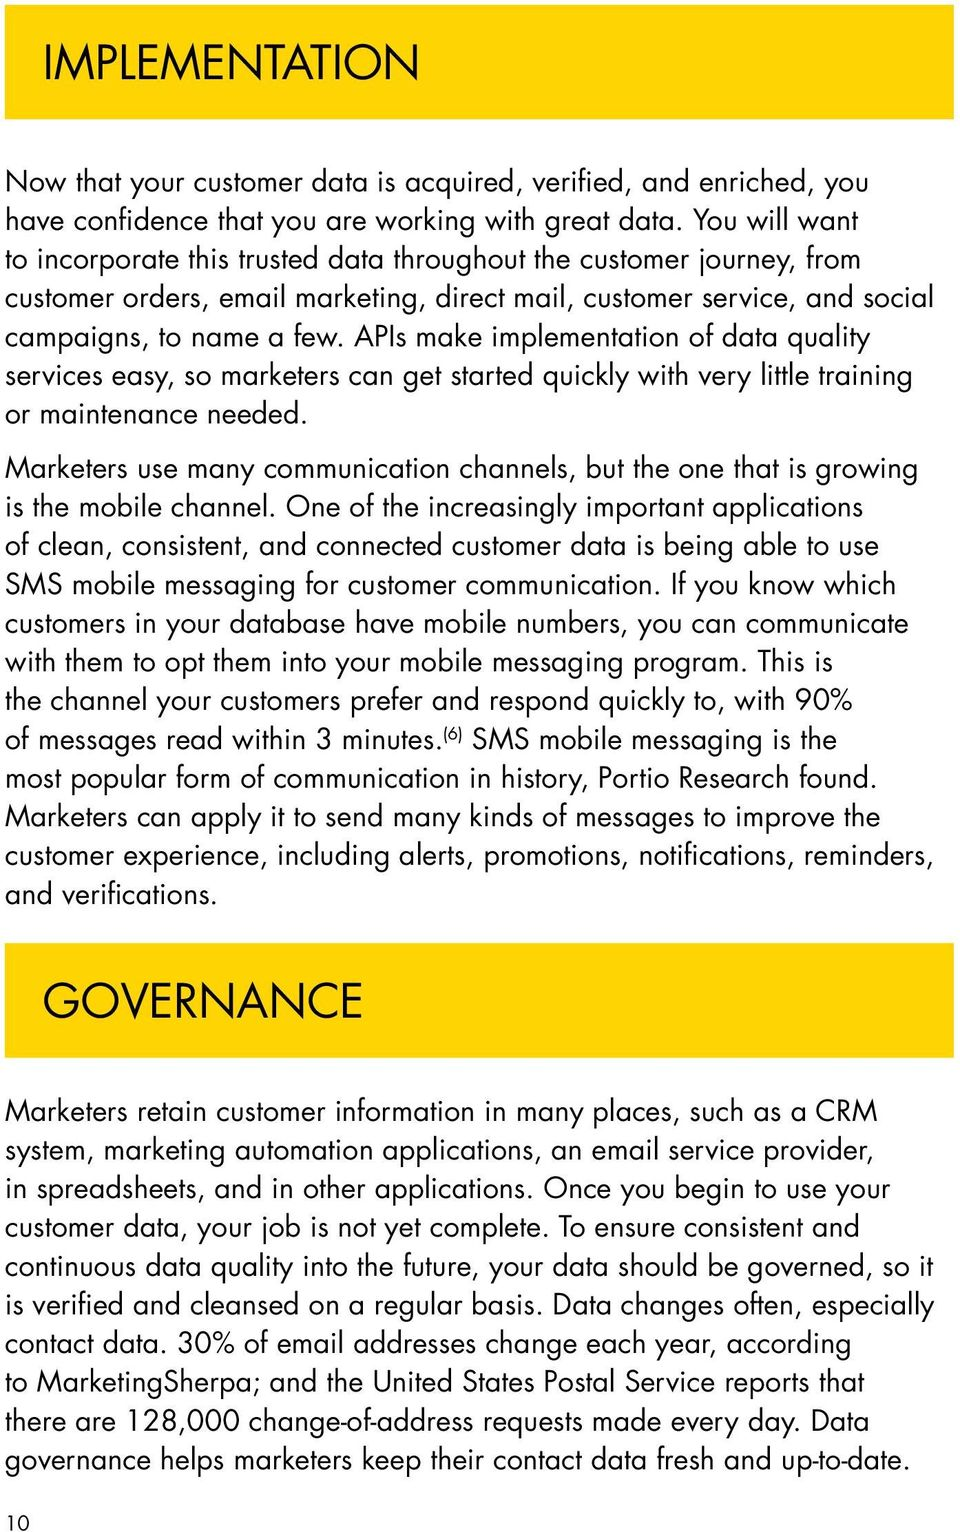 APIs make implementation of data quality services easy, so marketers can get started quickly with very little training or maintenance needed.